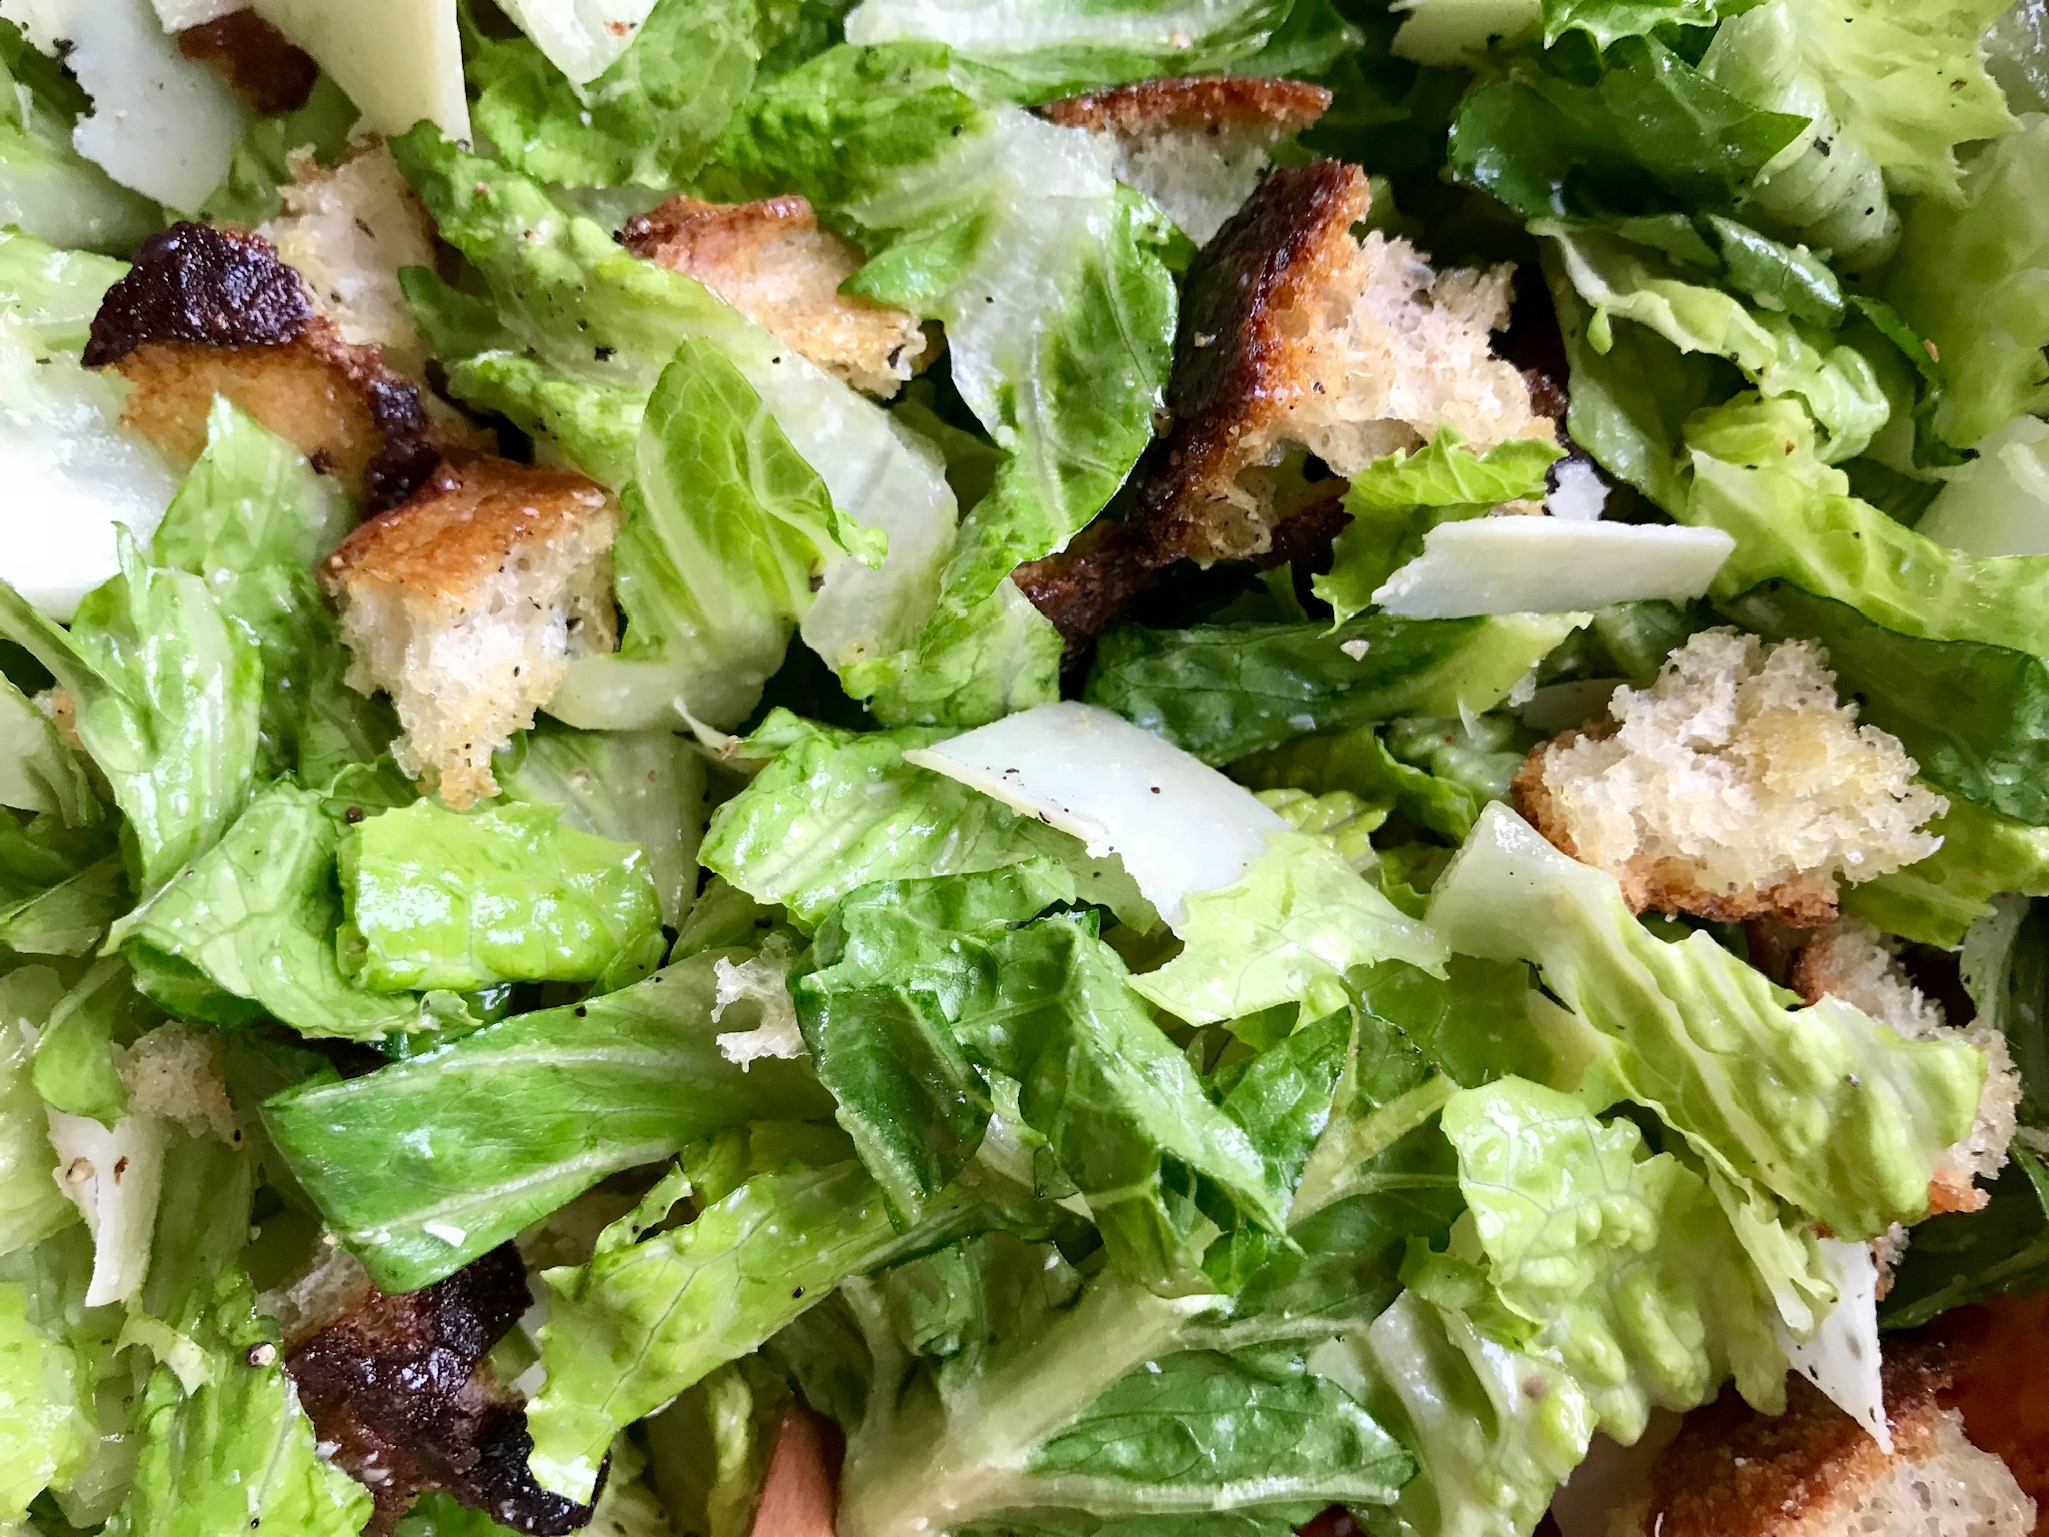 Salad From Scratch - Crisp, clean Caesar is a great antidote to all that rich, gluttonous food. It's the perfect side salad for a holiday meal.